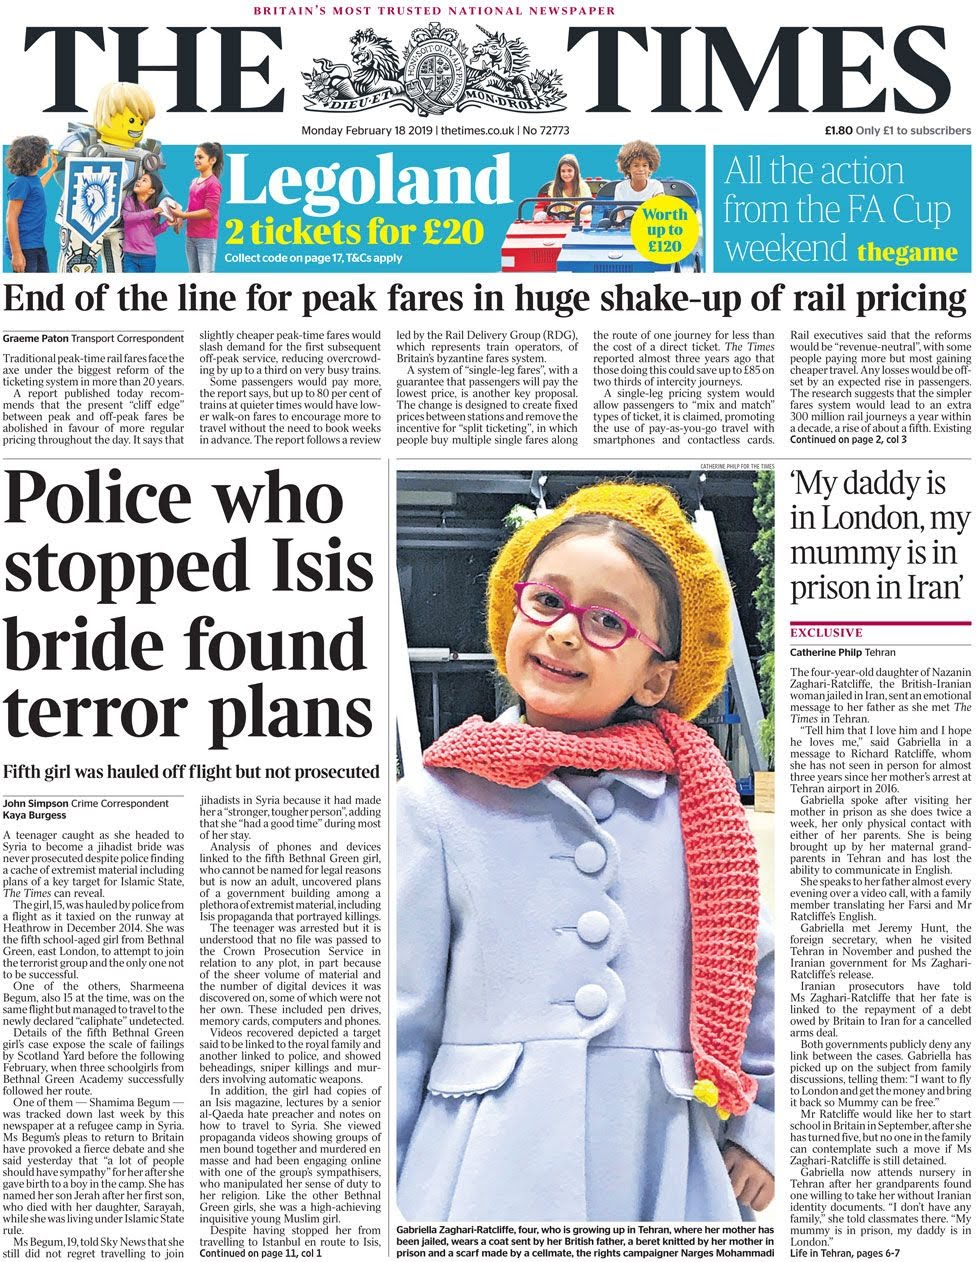 The Times front page 18 February 2019